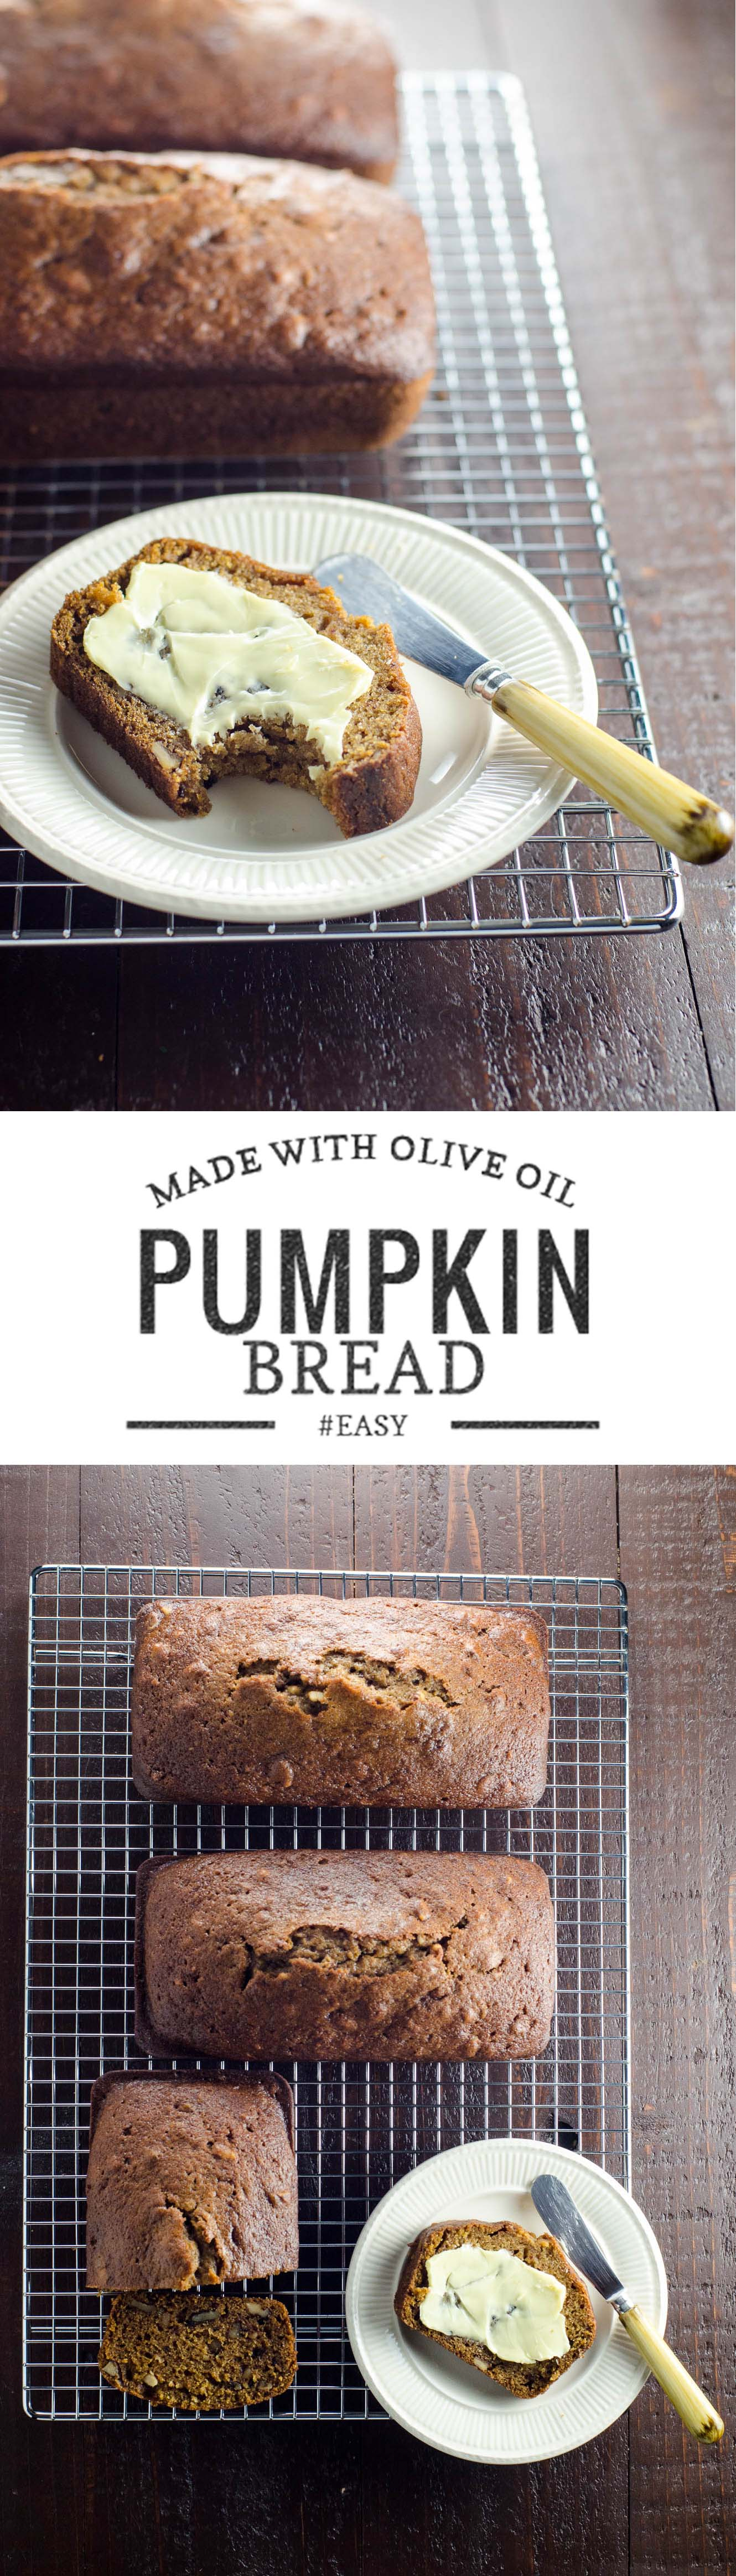 This ancient family recipe uses olive oil and a slightly unusual proportion of classic fall spices to make the most wonderful pumpkin bread.